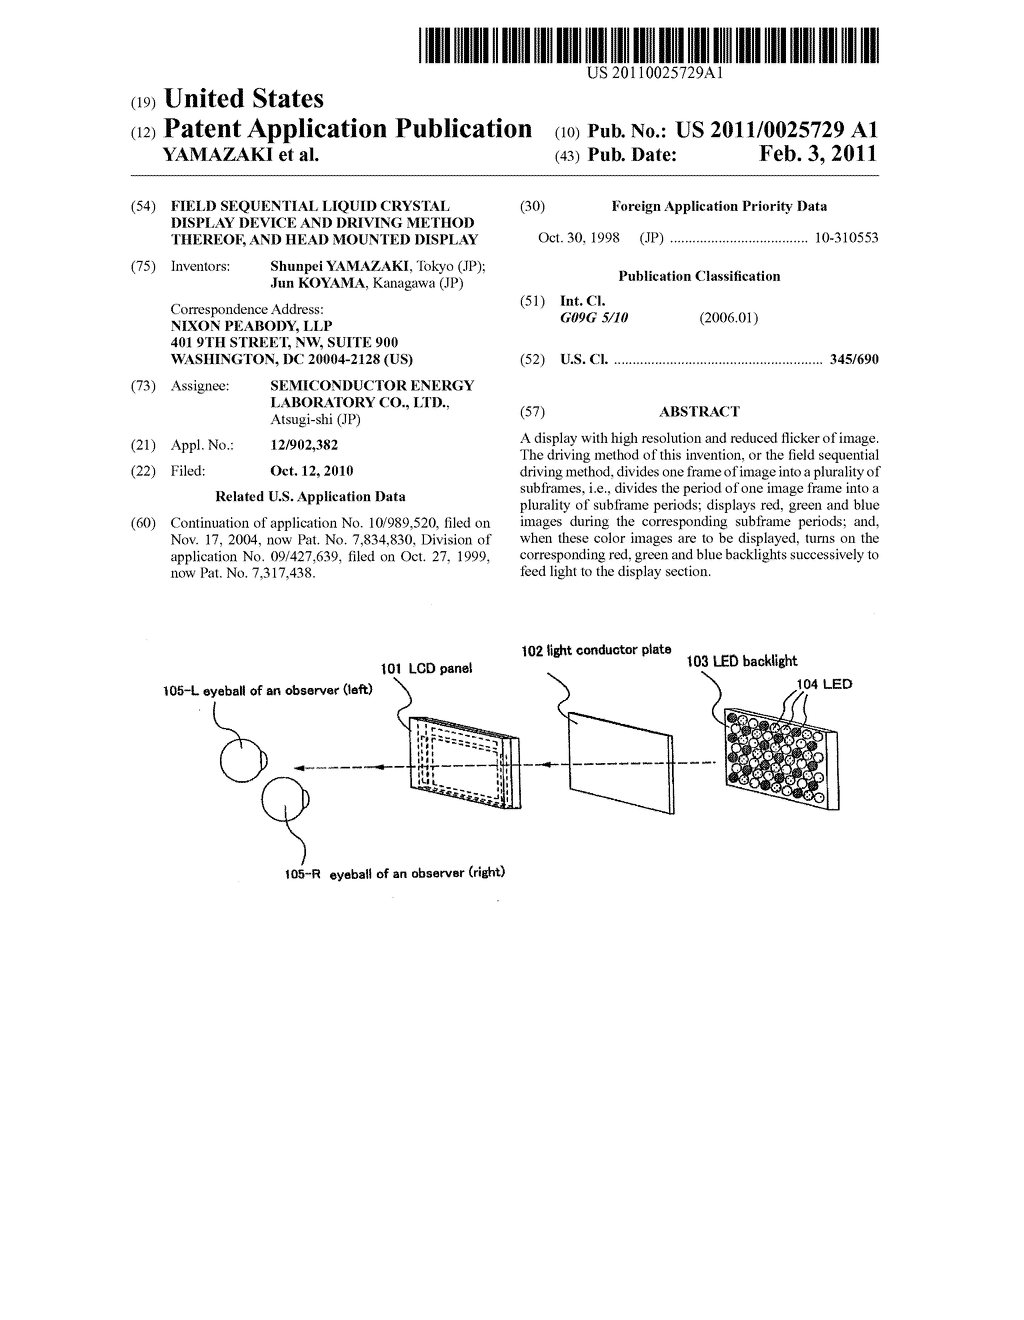 FIELD SEQUENTIAL LIQUID CRYSTAL DISPLAY DEVICE AND DRIVING METHOD THEREOF, AND HEAD MOUNTED DISPLAY - diagram, schematic, and image 01